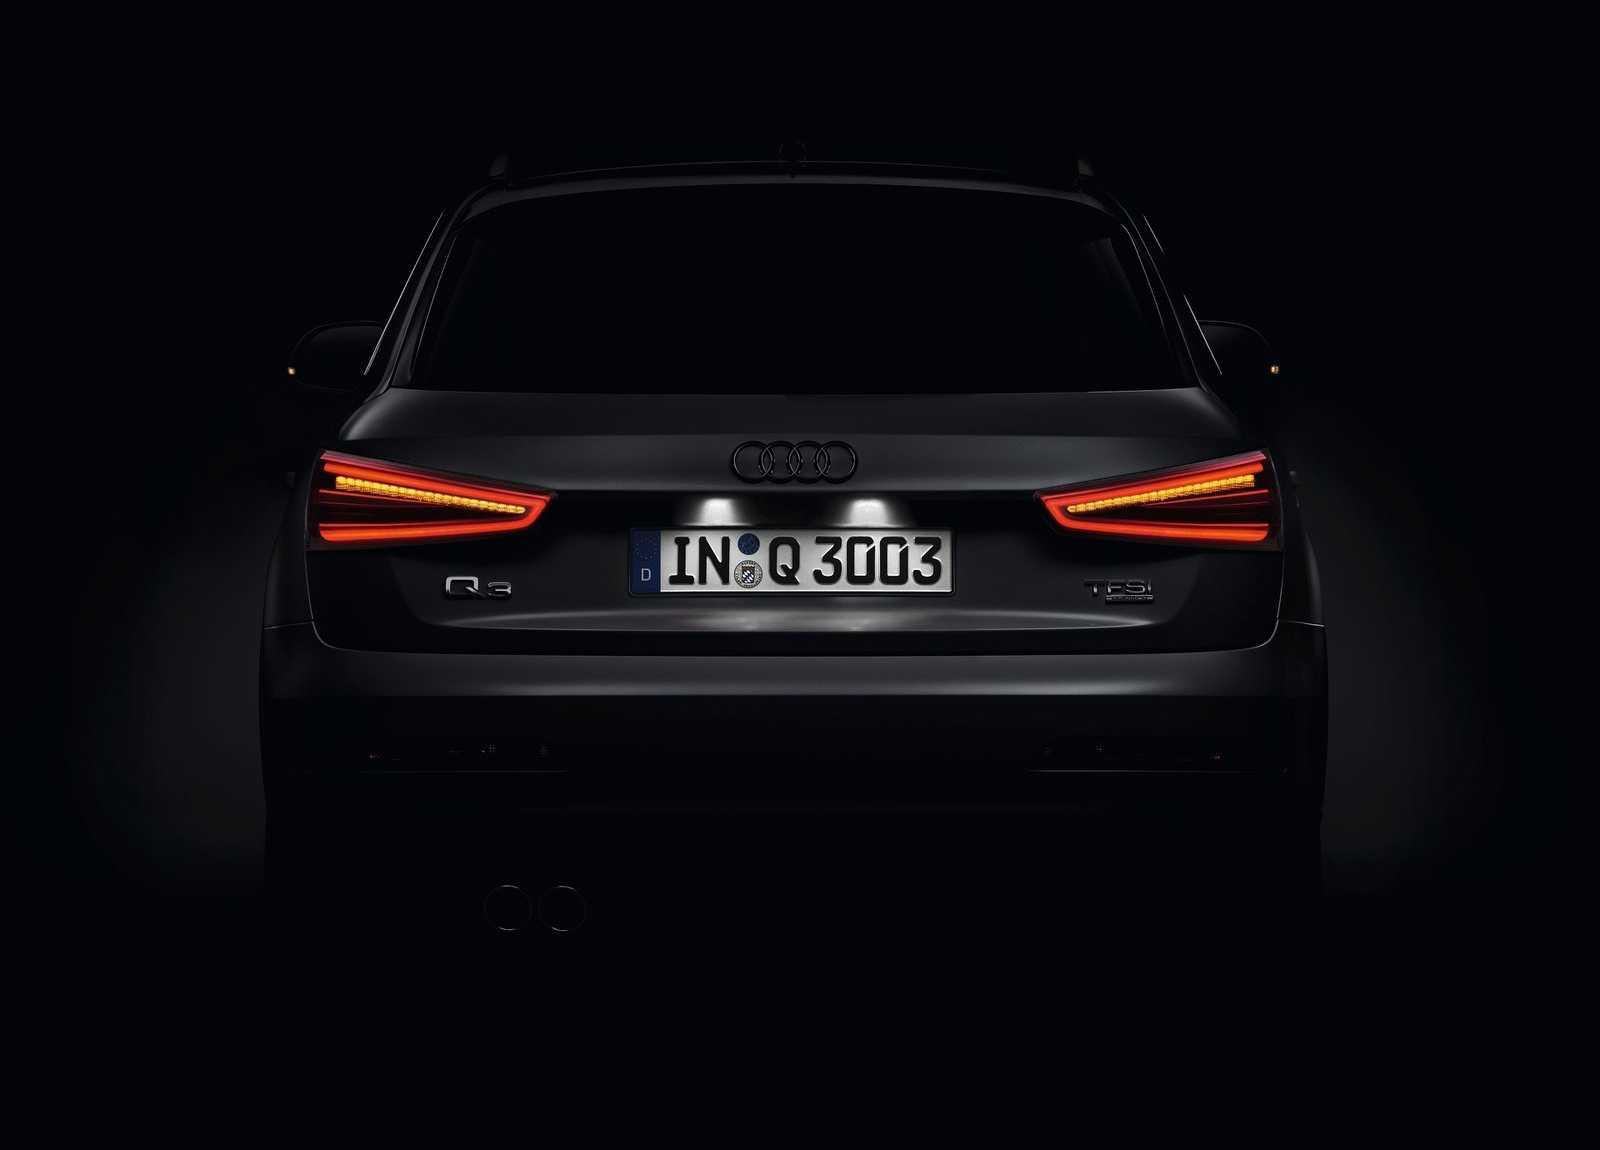 Audi Q3 Hd Wallpapers Wallpaper Pictures Gallery Of - Medium